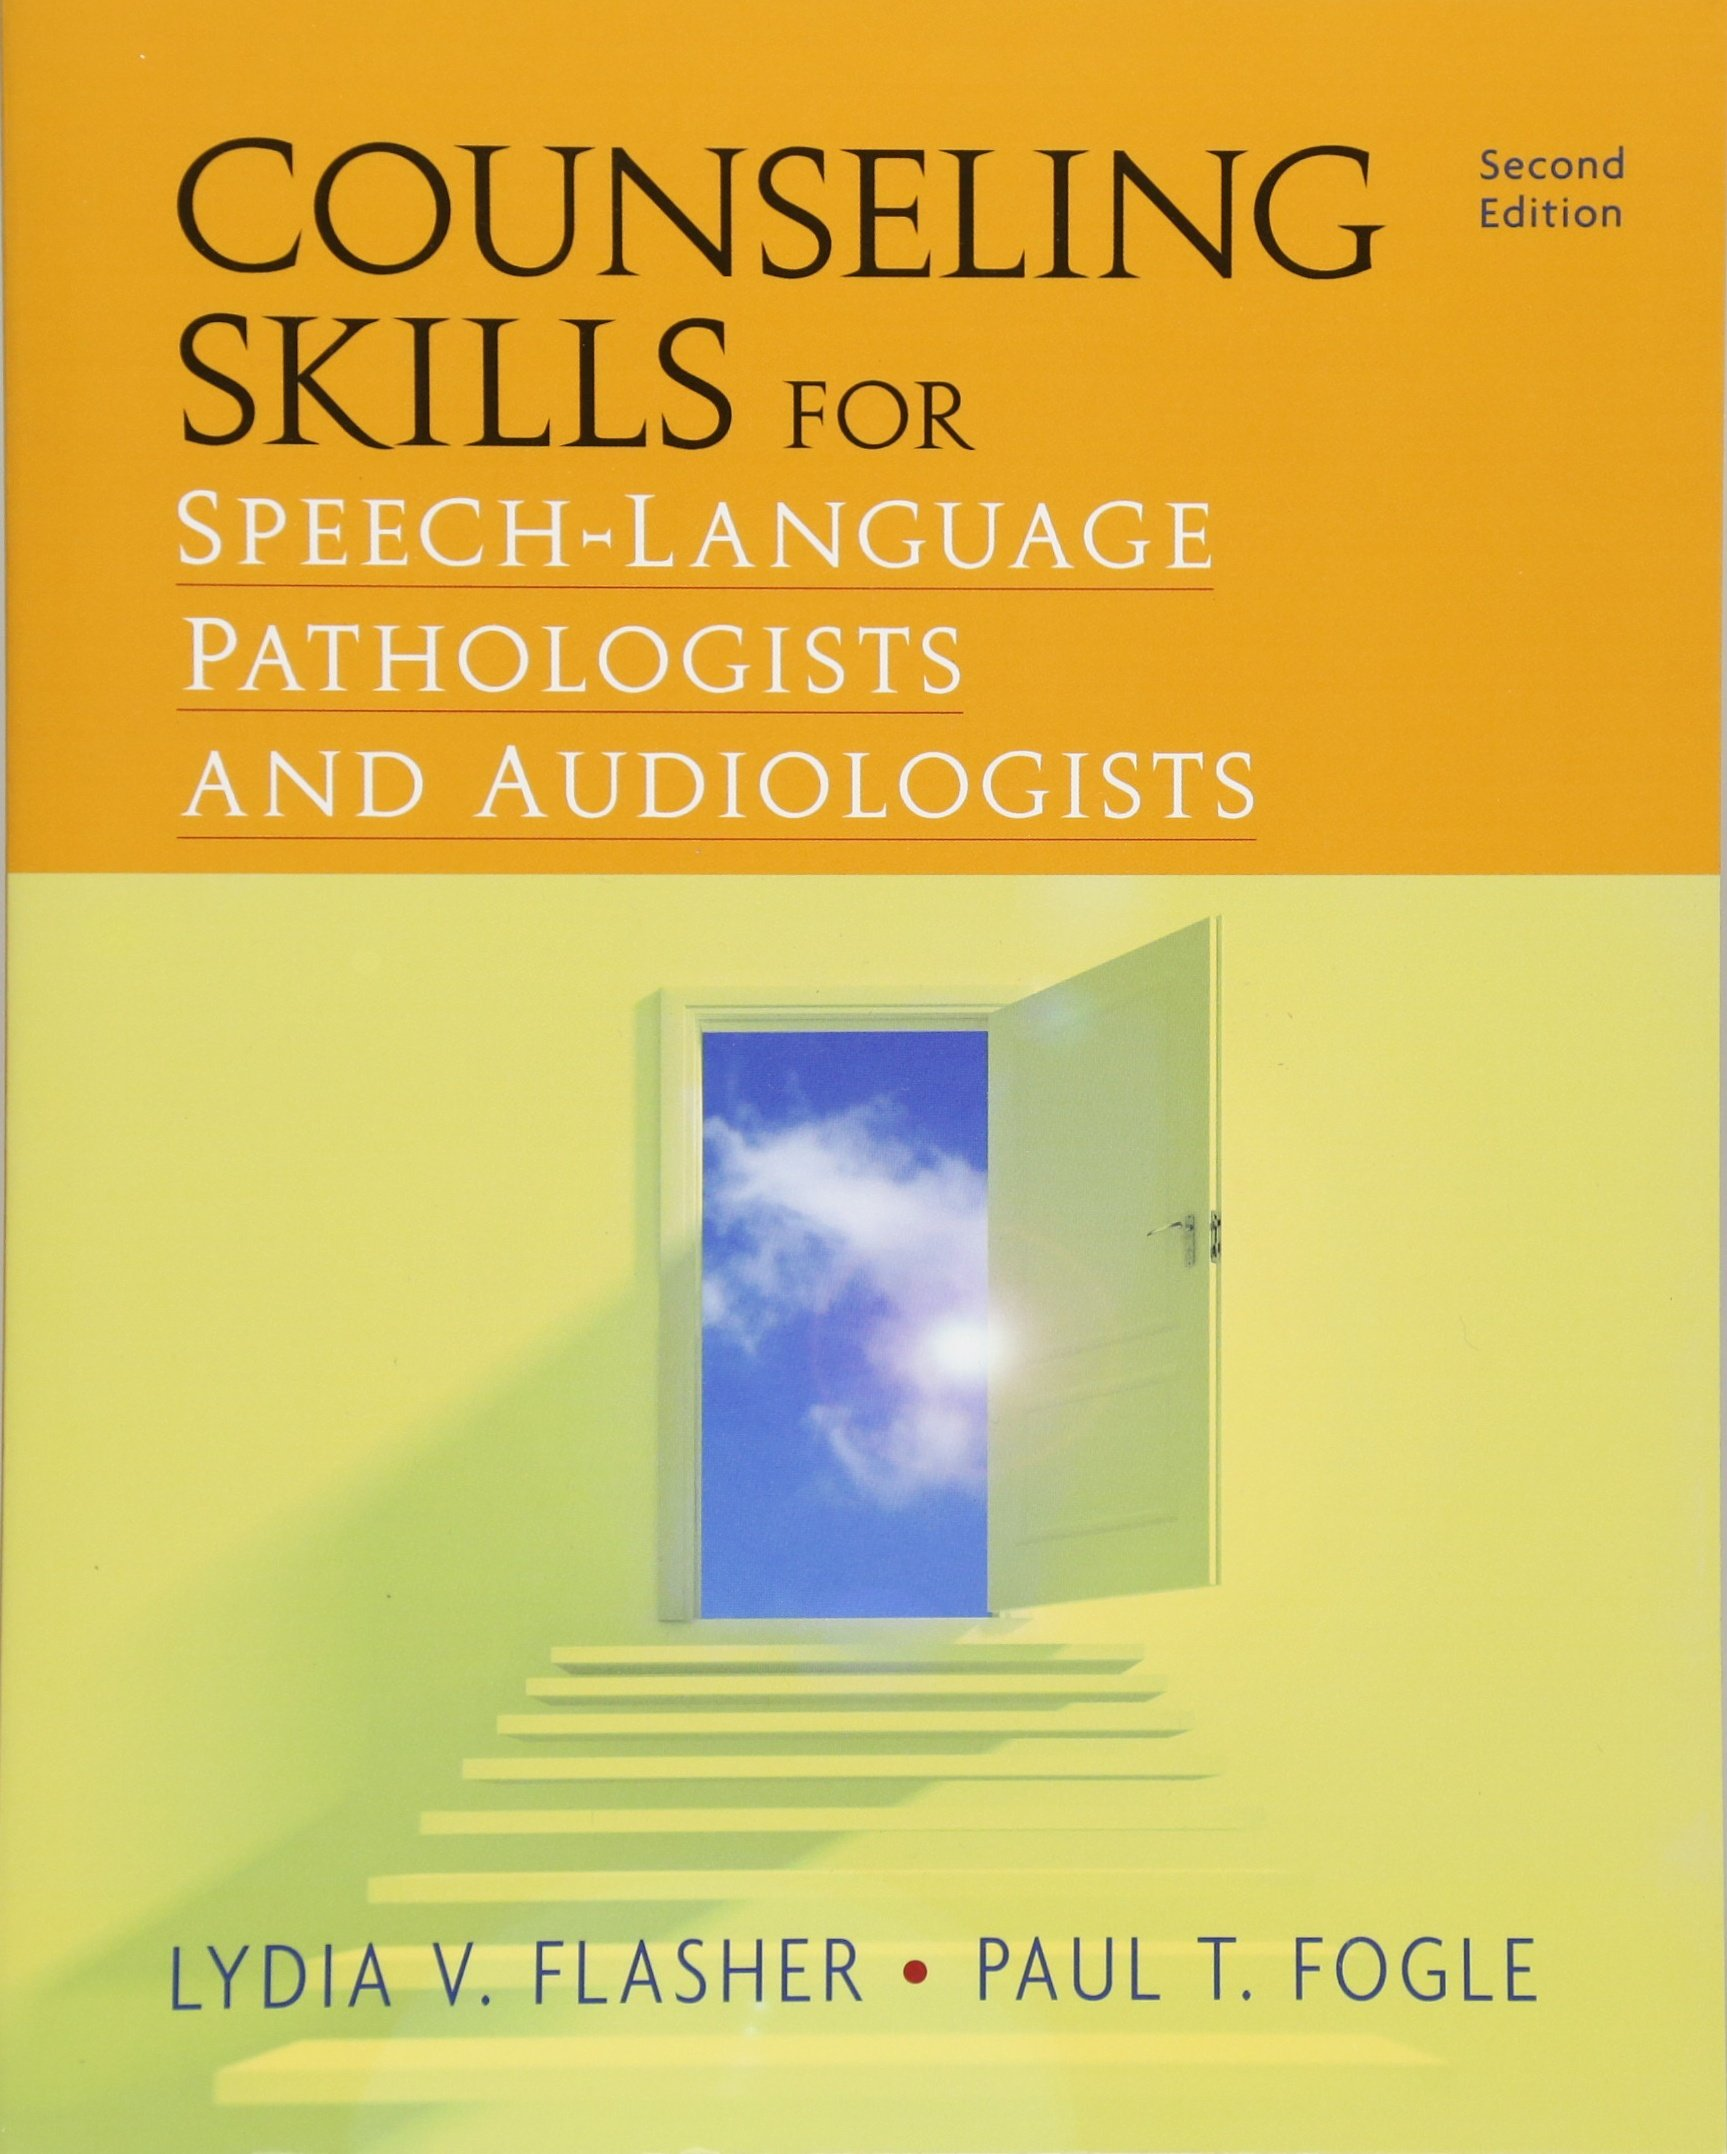 Counseling Skills for Speech-Language Pathologists and Audiologists